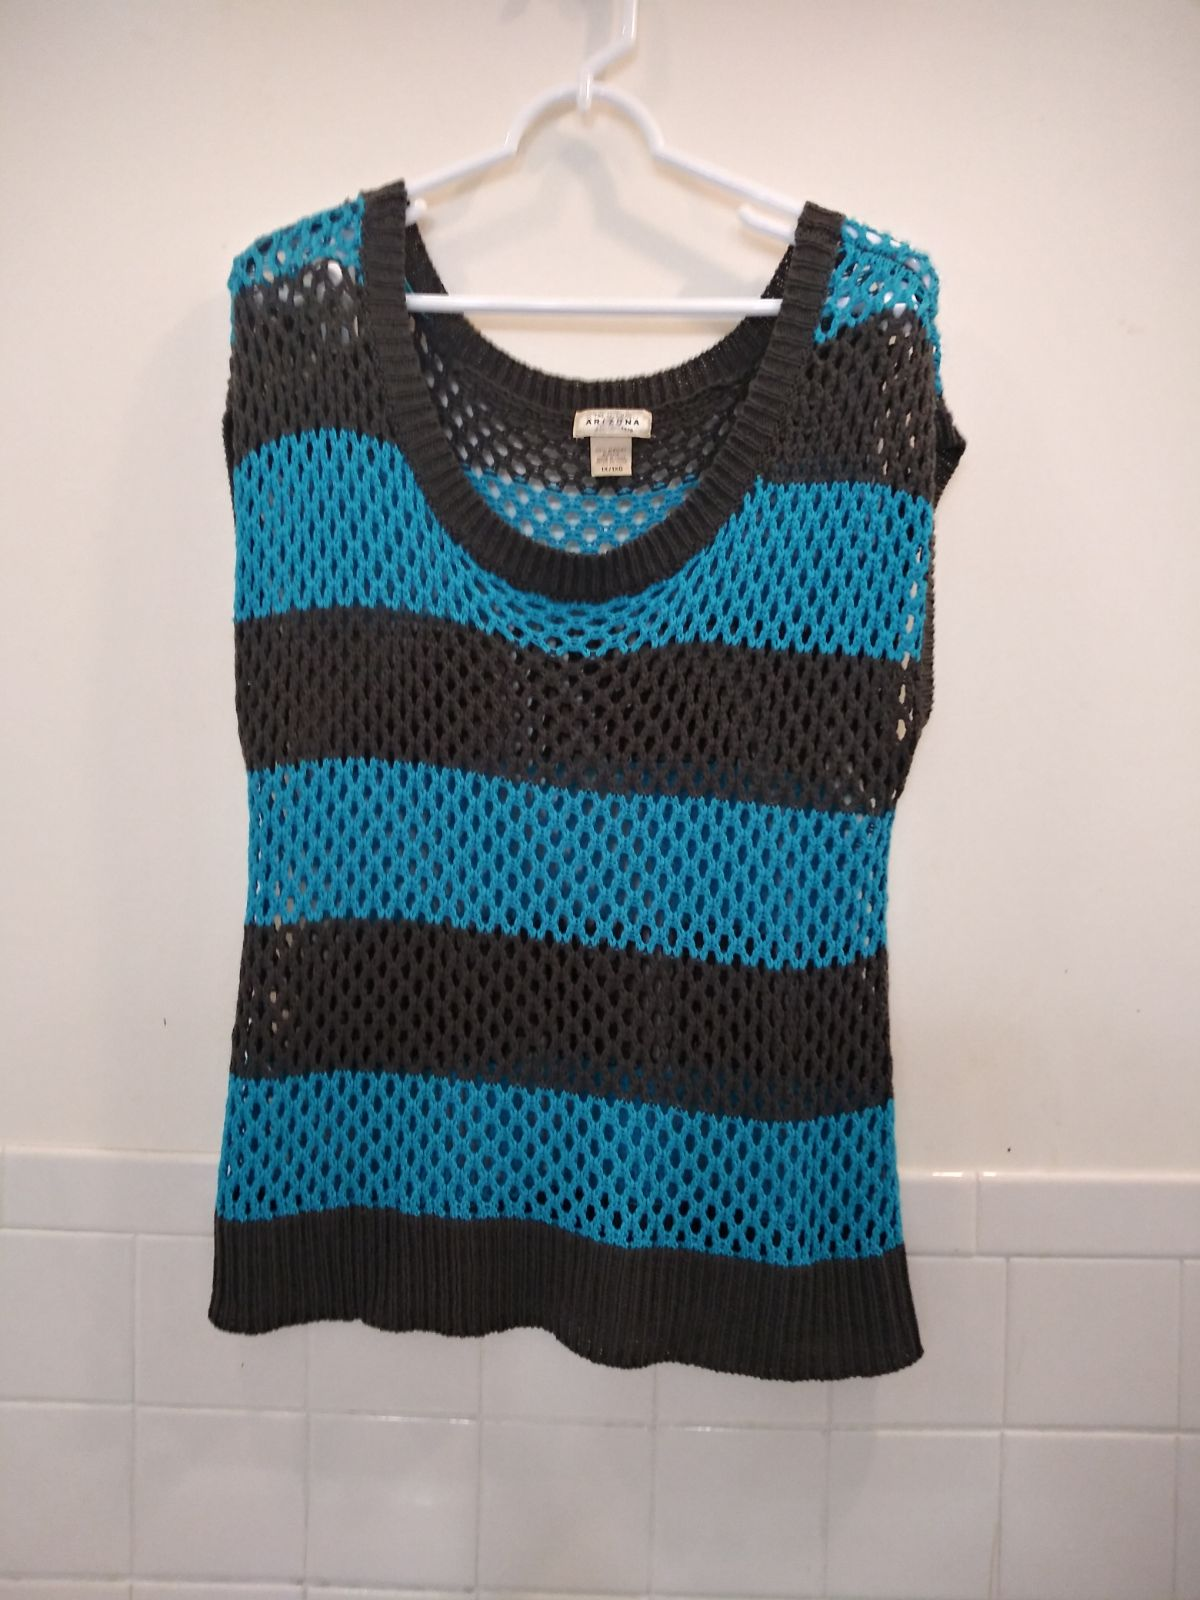 1x arizona blue knit crochet top